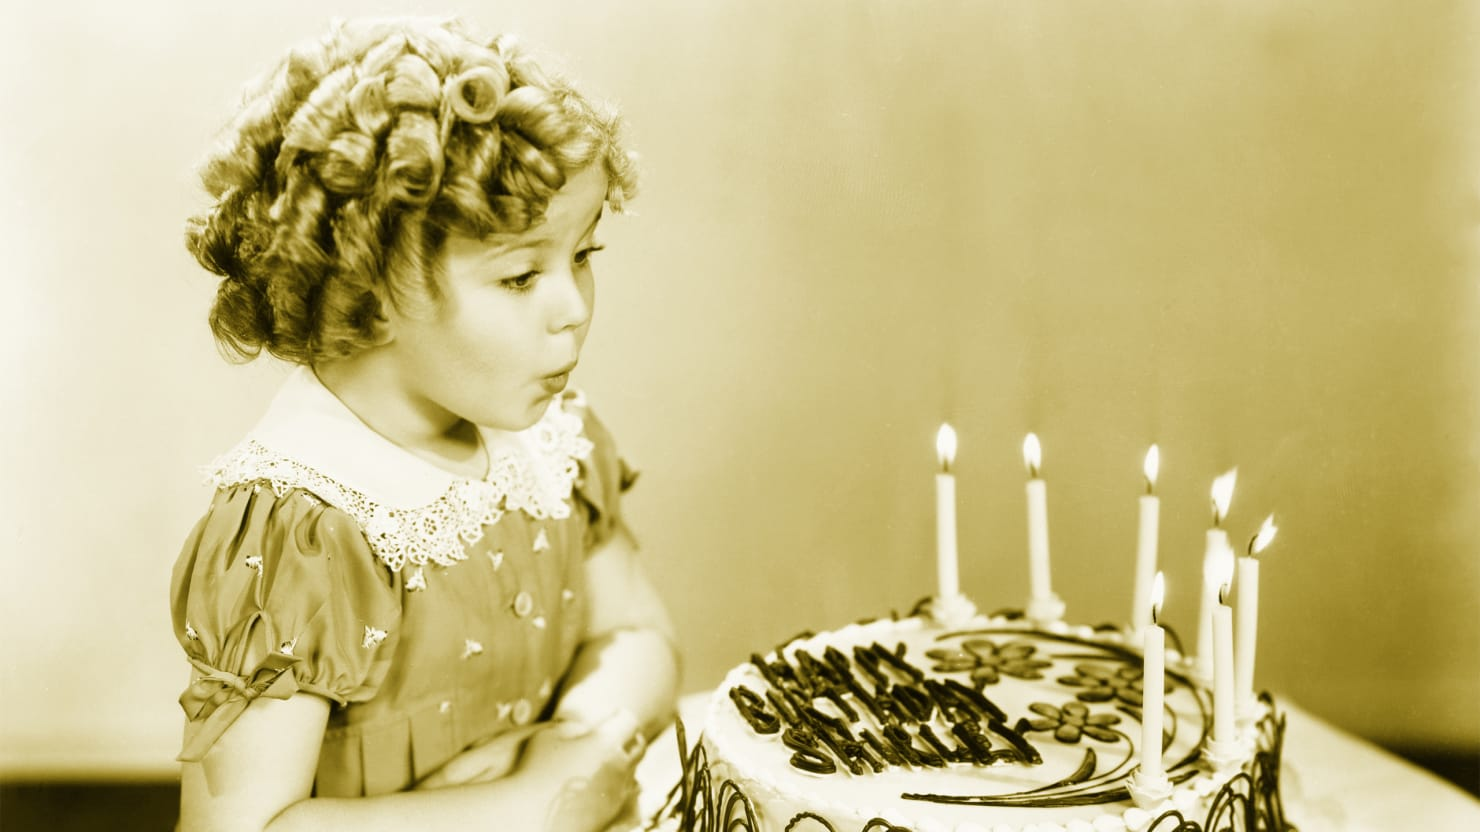 Why Should We Pay for 'Happy Birthday'?